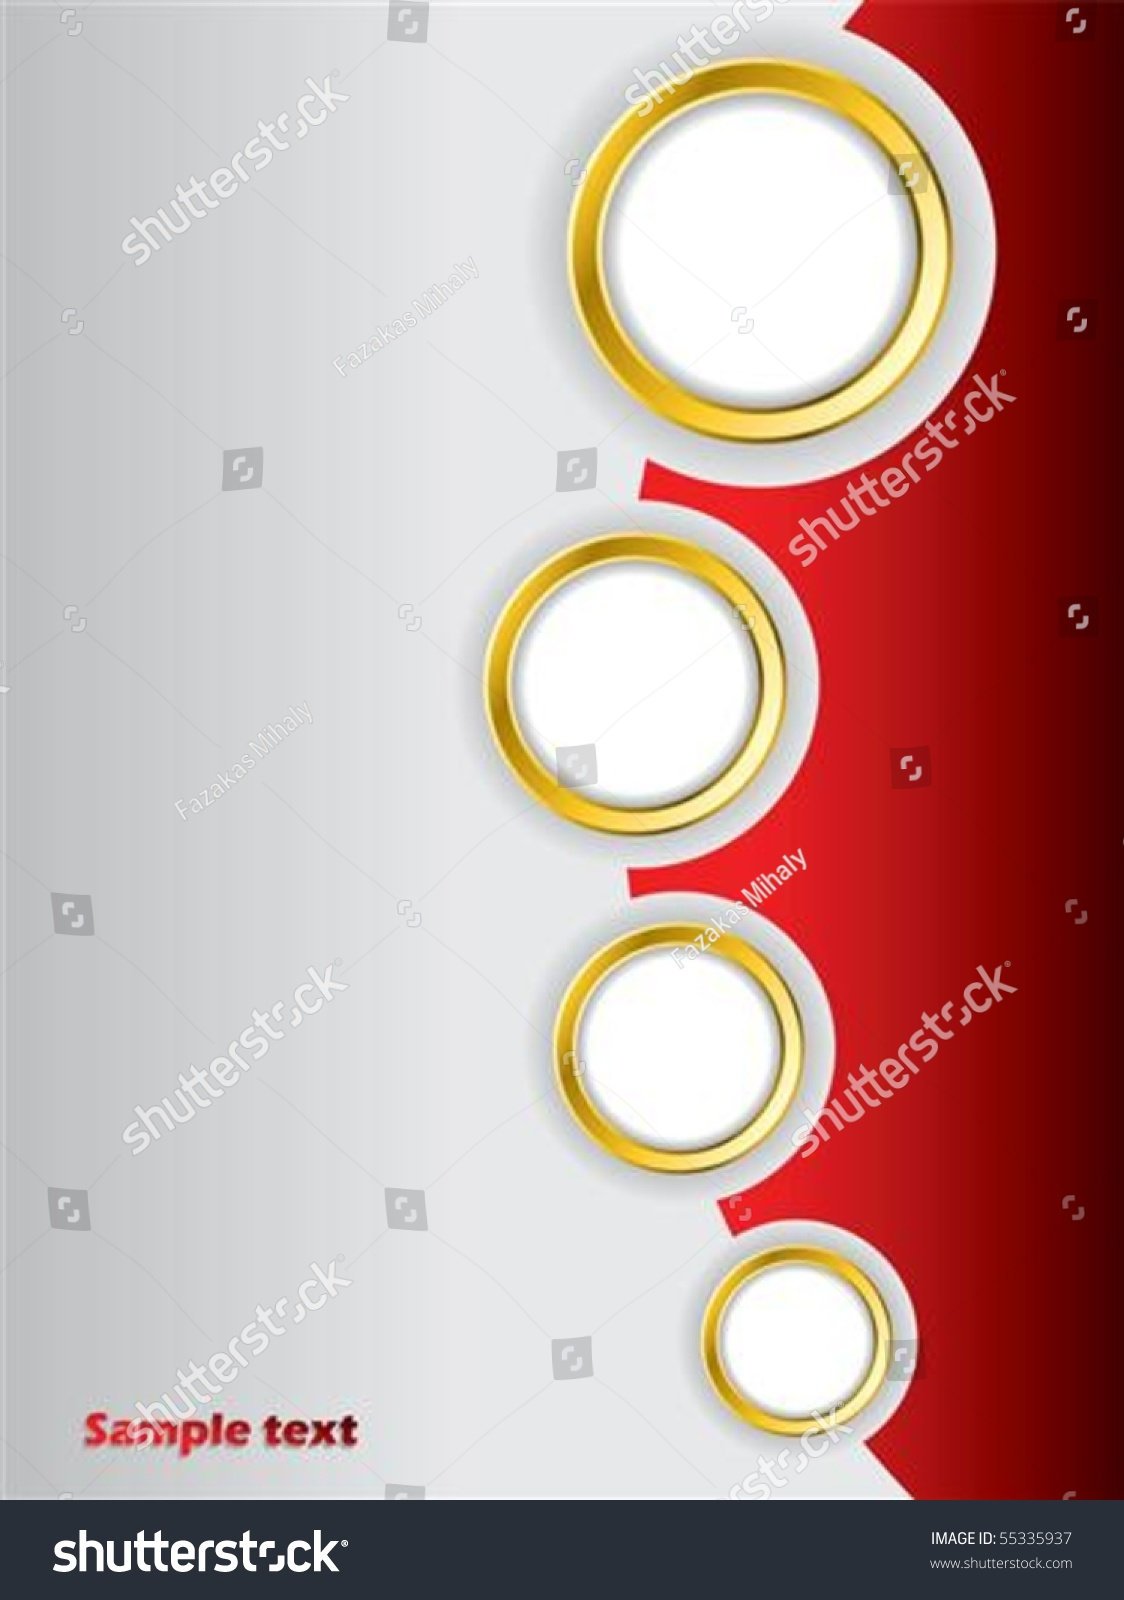 Red brochure design background template stock vector for Background for brochure design